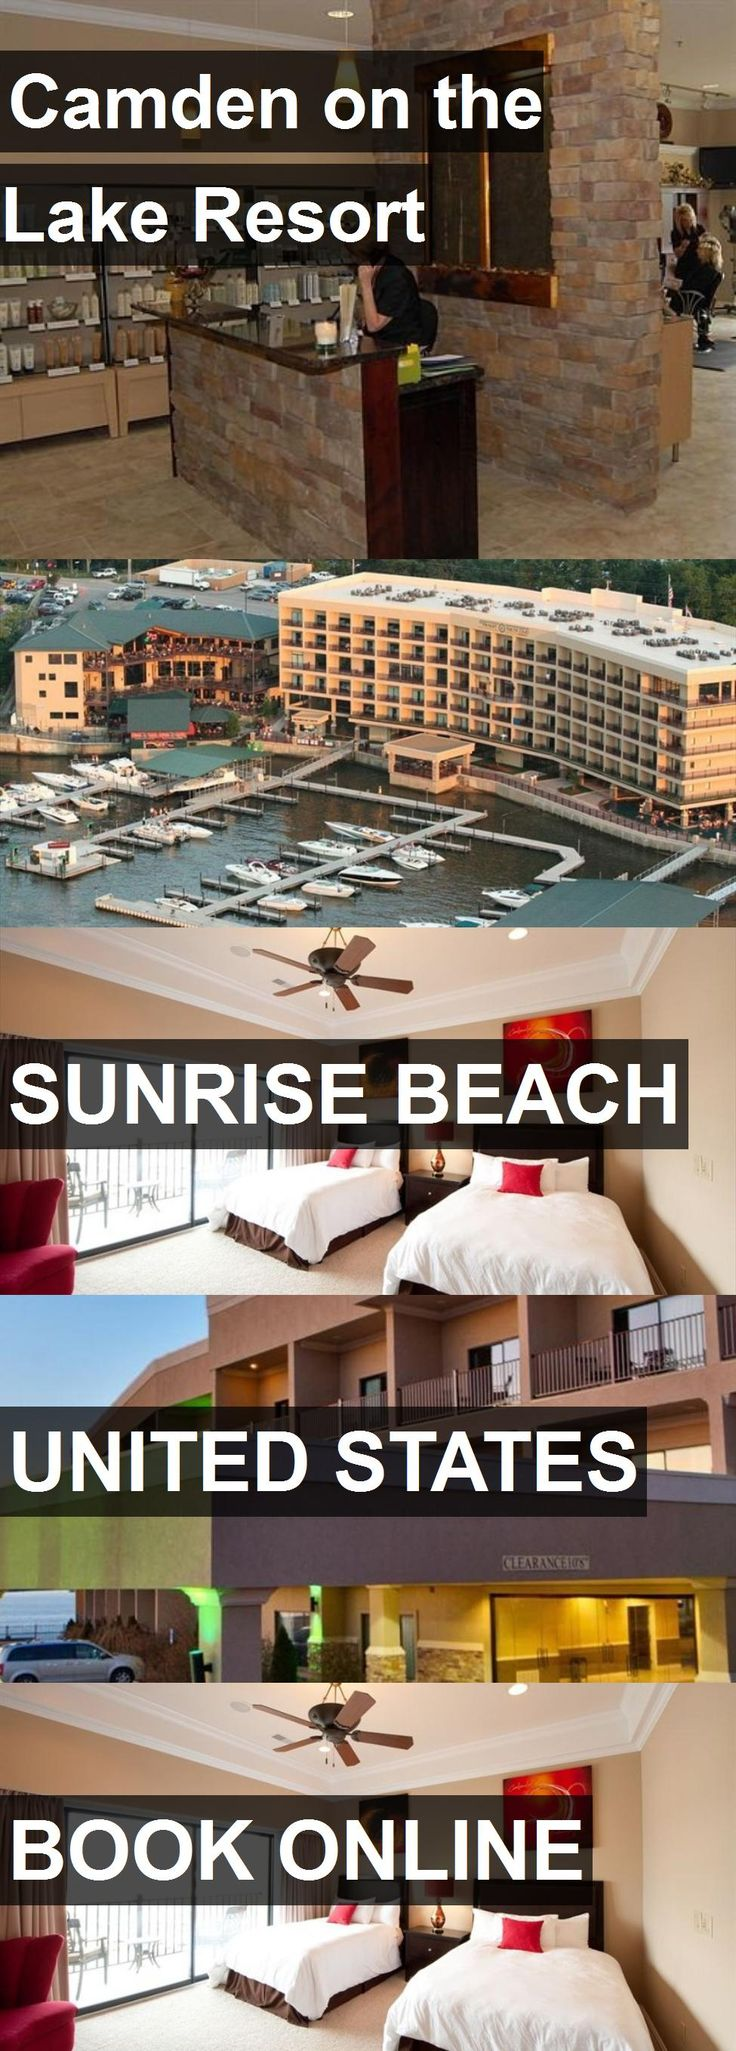 Hotel Camden on the Lake Resort in Sunrise Beach, United States. For more information, photos, reviews and best prices please follow the link. #UnitedStates #SunriseBeach #CamdenontheLakeResort #hotel #travel #vacation